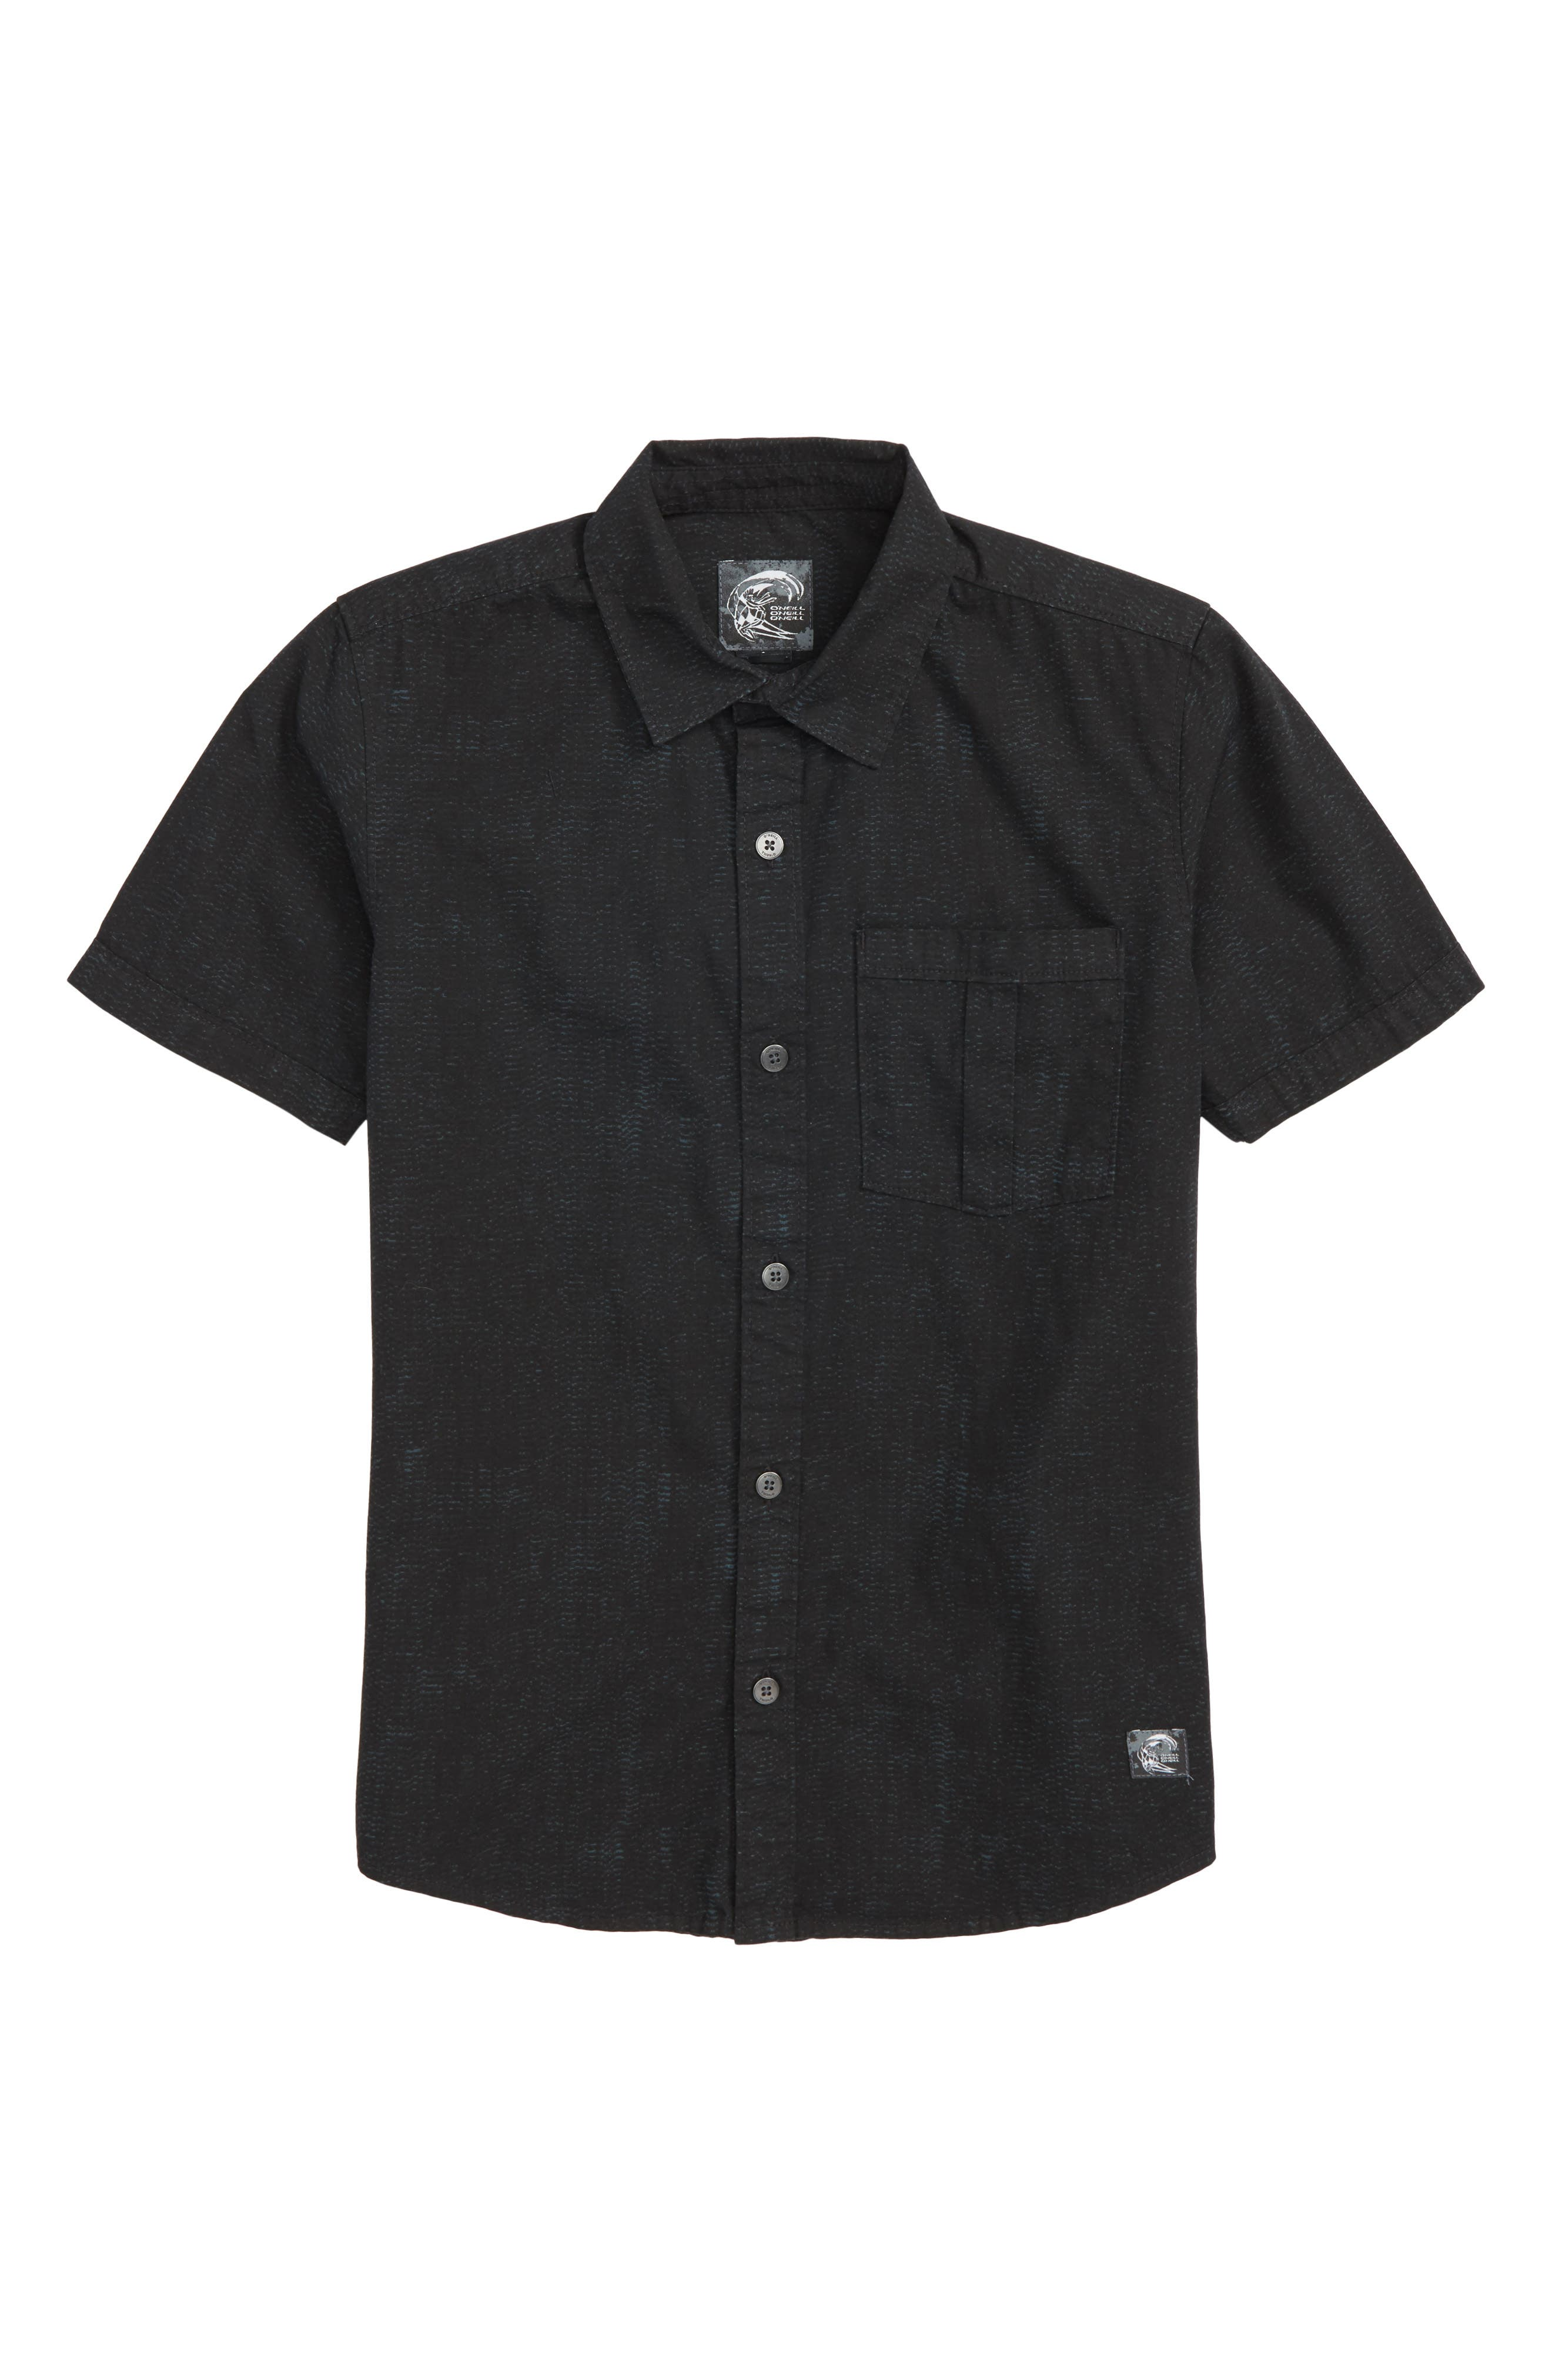 Alternate Image 1 Selected - O'Neill Untitled Woven Shirt (Big Boys)